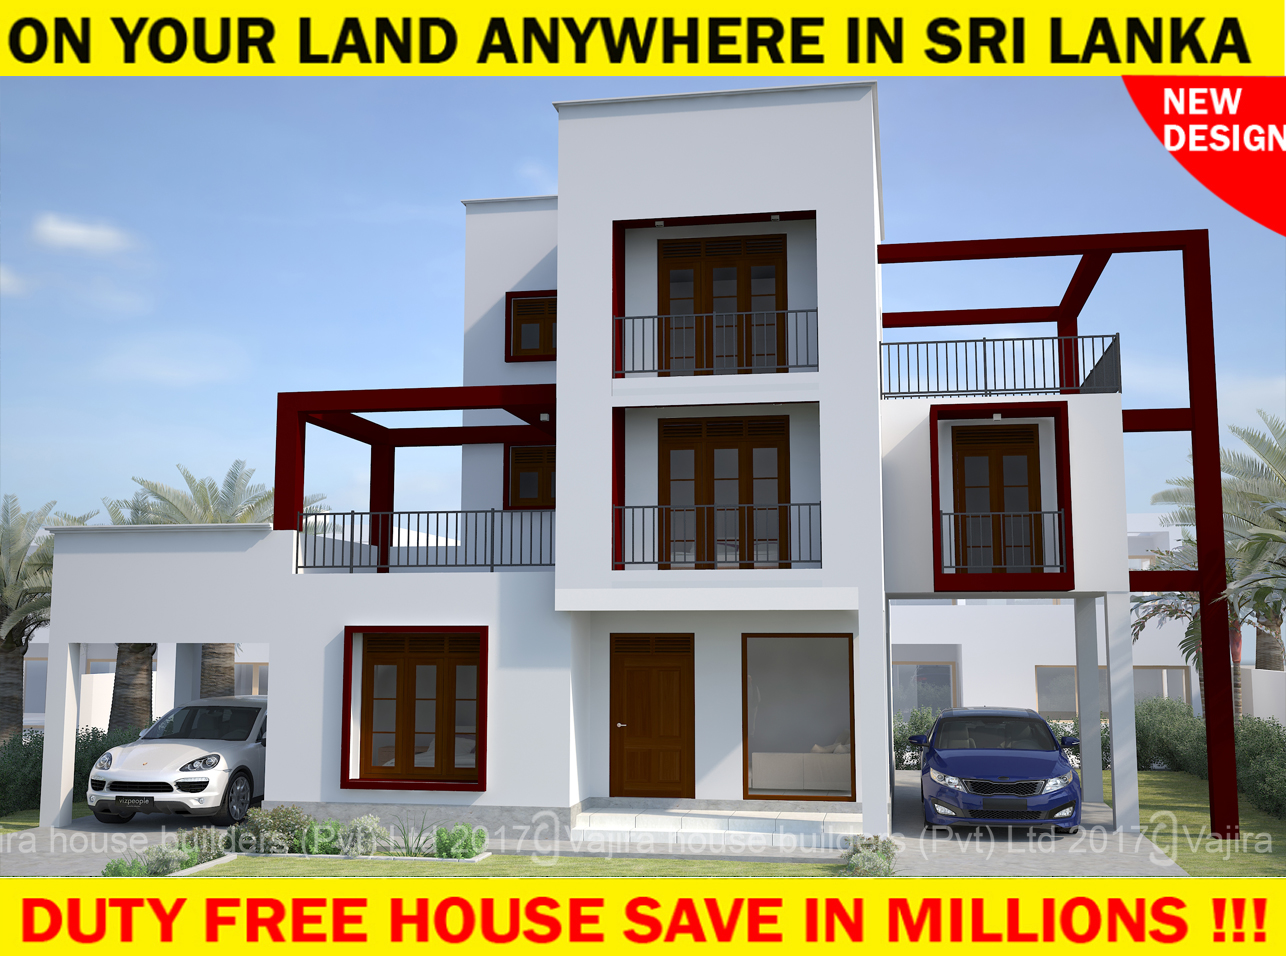 Home plans sri lanka 2017 for Sri lankan homes plans